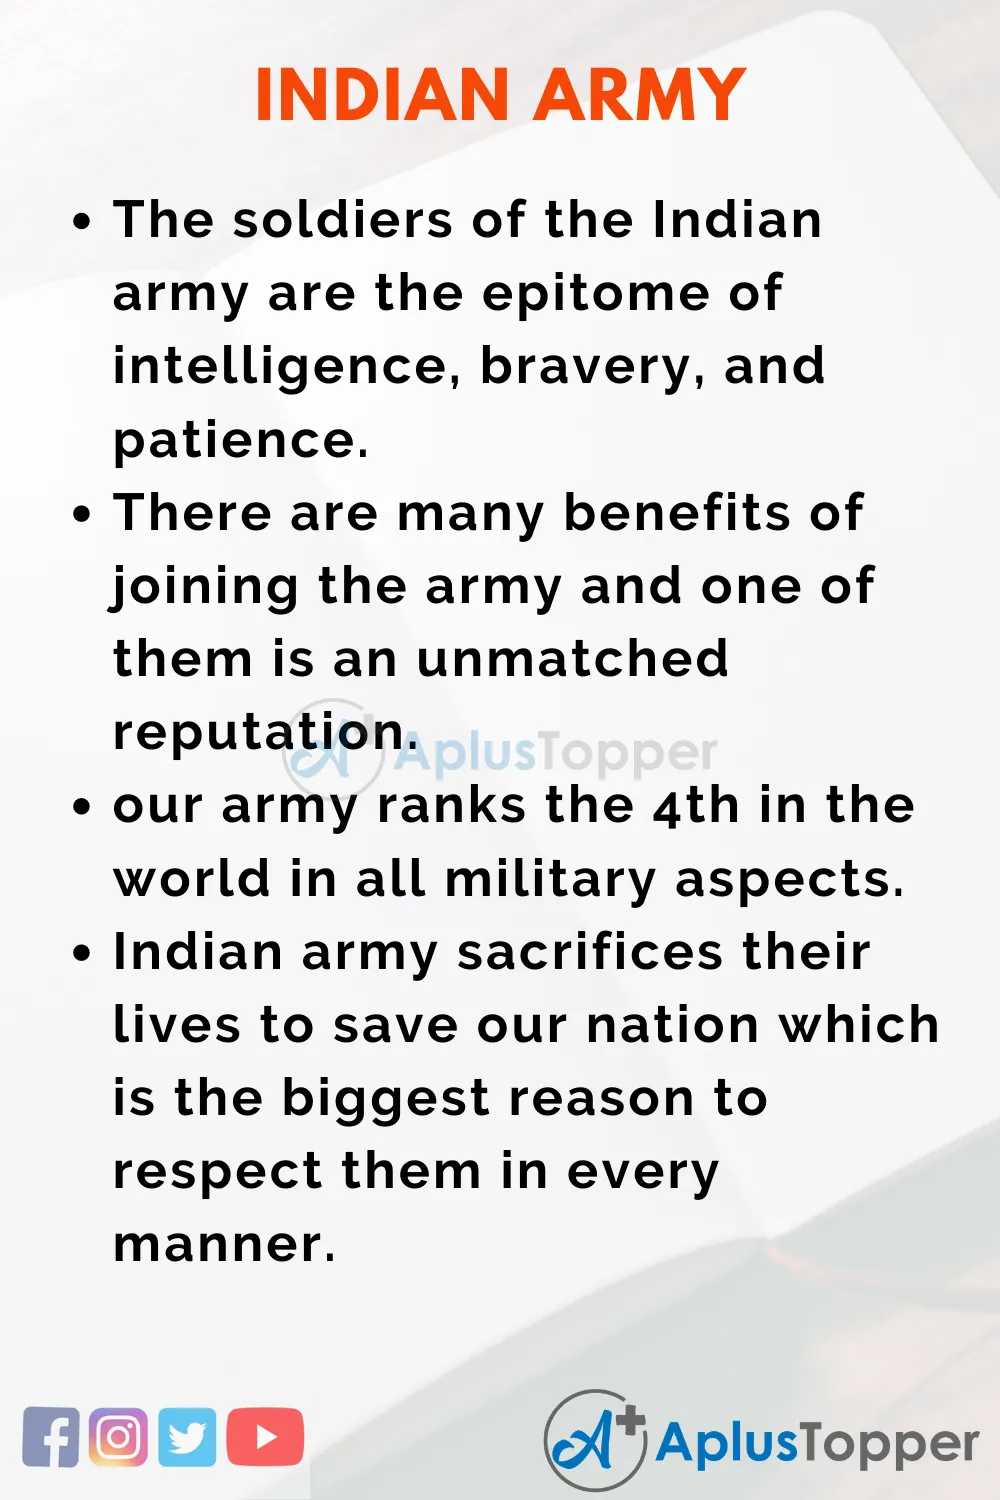 Indian Army Essay For Student And Chilldren In English Essayonindianarmy Indianarmyessay Aplustopper India